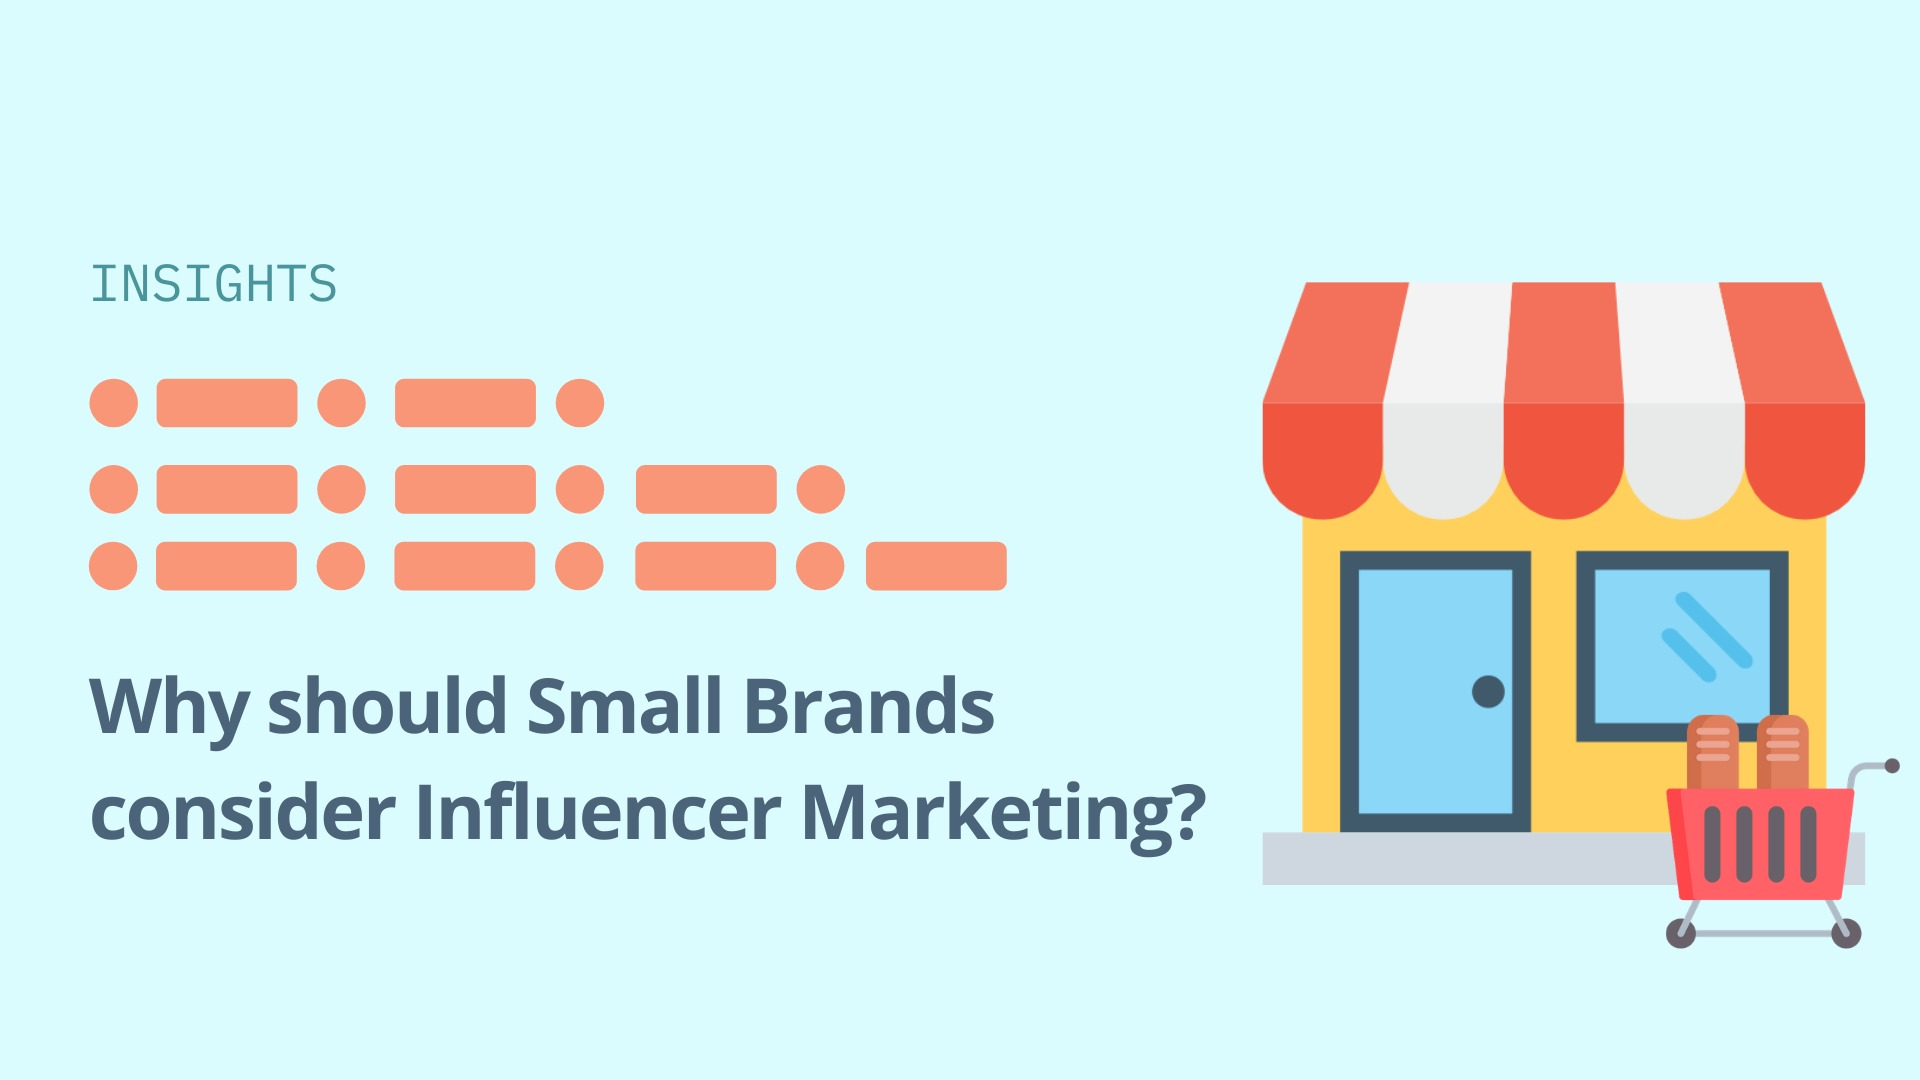 Why should small brands consider influencer marketing? image